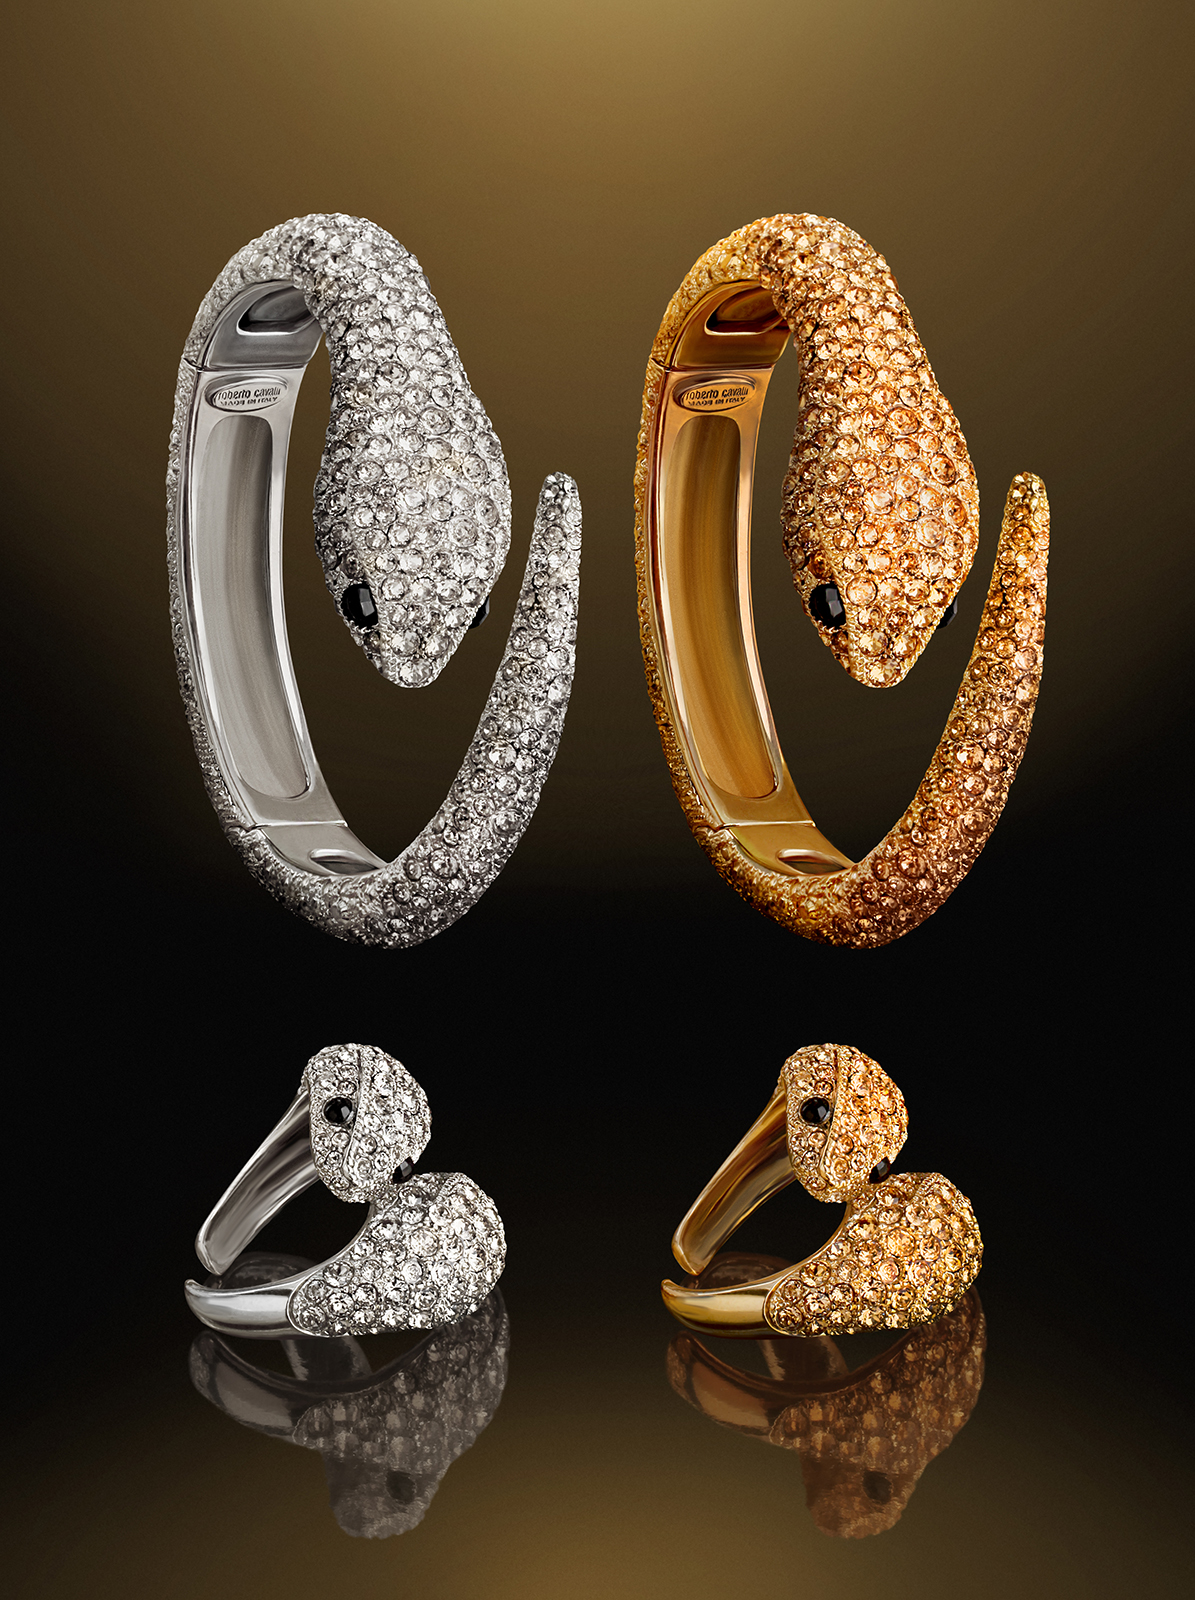 roberto-cavalli-snake-jewellery-bracelet-ring-fashion-still-life.jpg